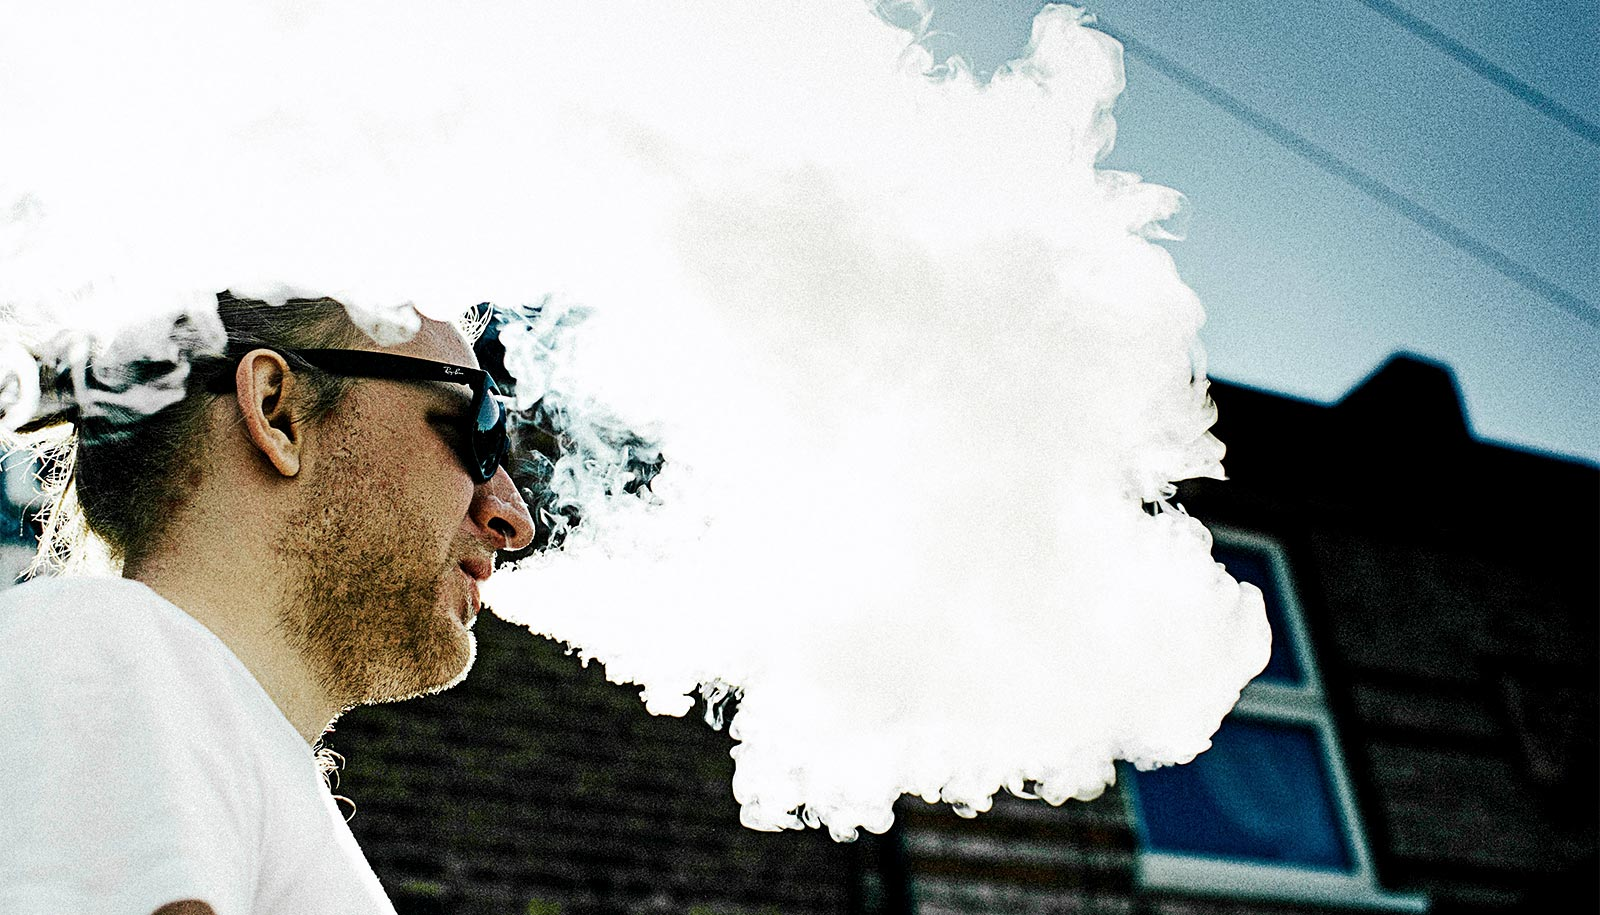 Most electronic cigarette users want to quit